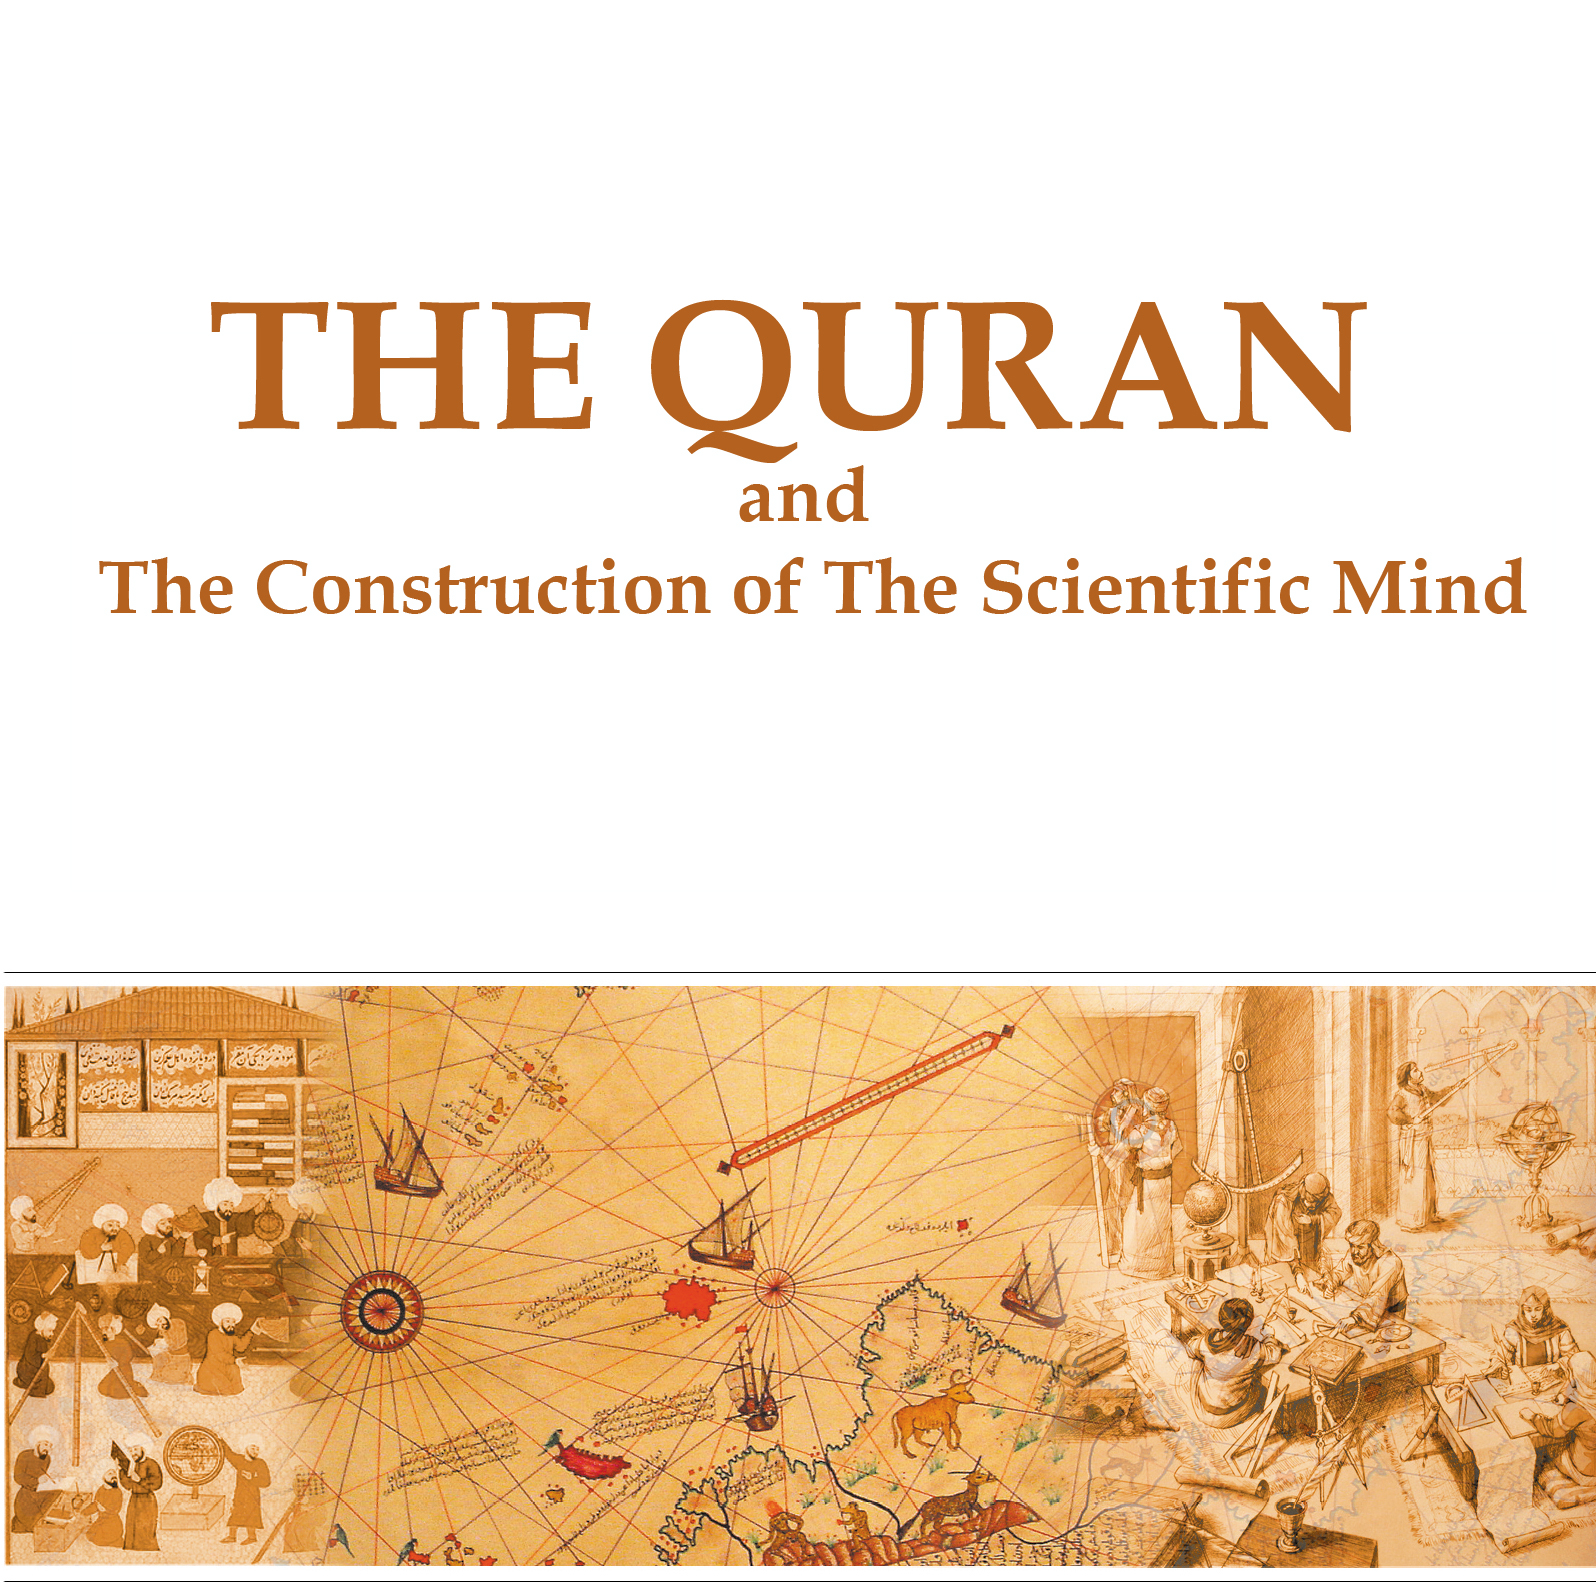 http://www.canertaslaman.com/wp-content/uploads/2018/10/The-Quran-and-The-Construction-of-The-Scientific-Mind.jpg